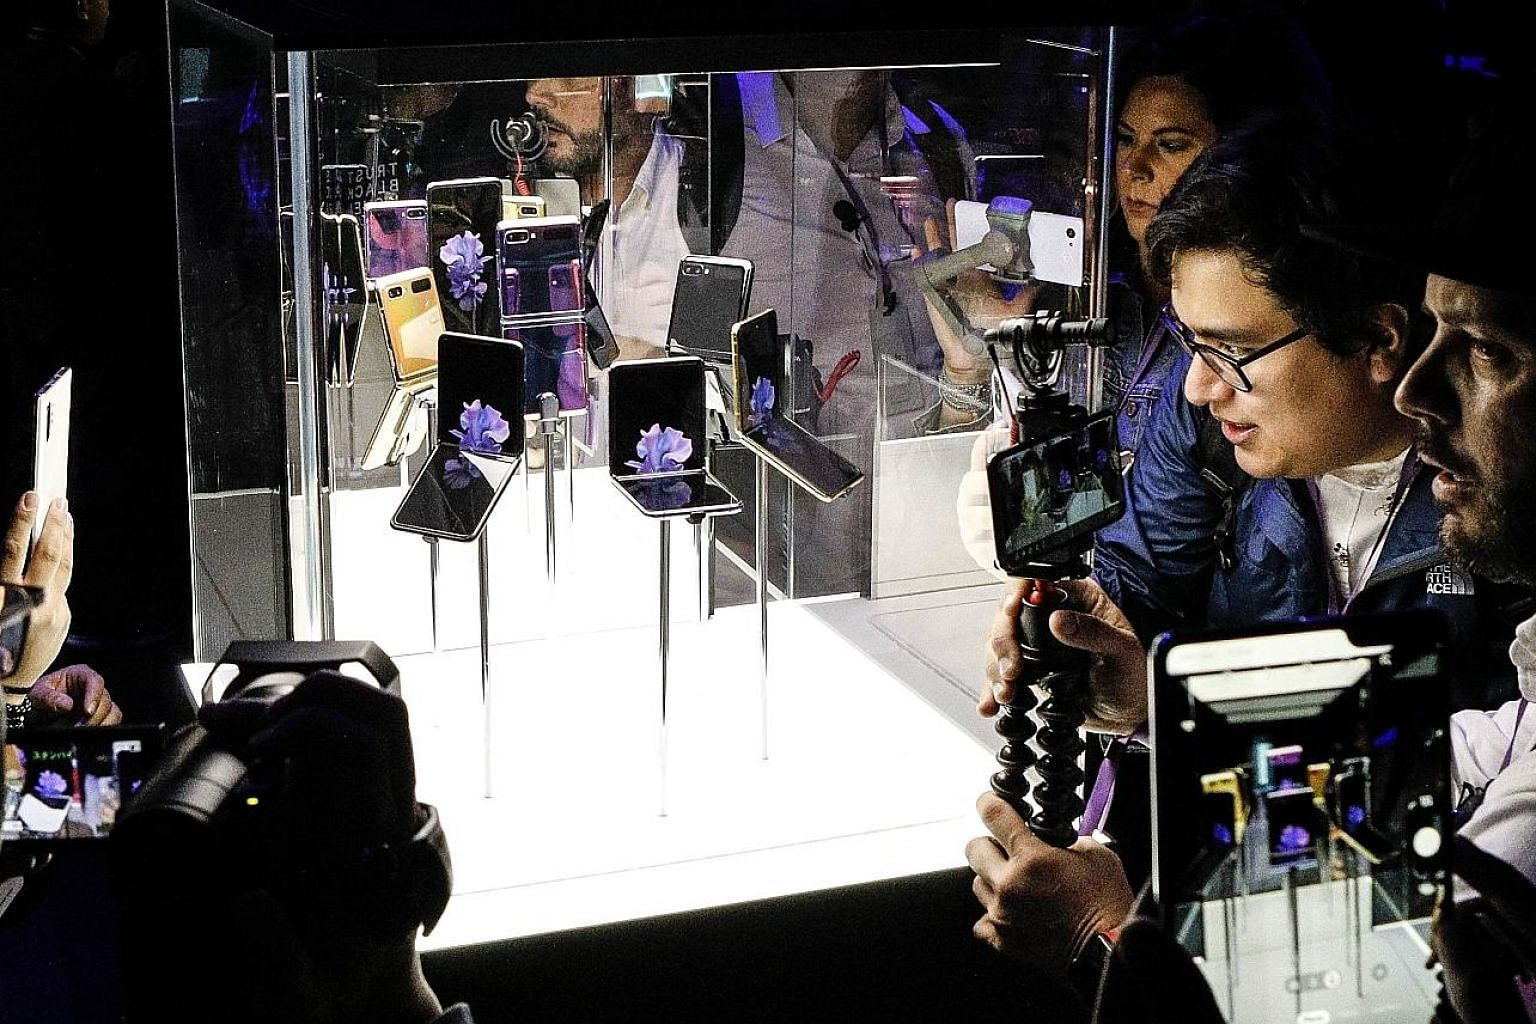 Samsung's Galaxy Z Flip smartphone on display at the Galaxy Unpacked event at the Palace of Fine Arts in San Francisco on Feb 11. The new Motorola Razr smartphone. The Huawei Mate X foldable smartphone.